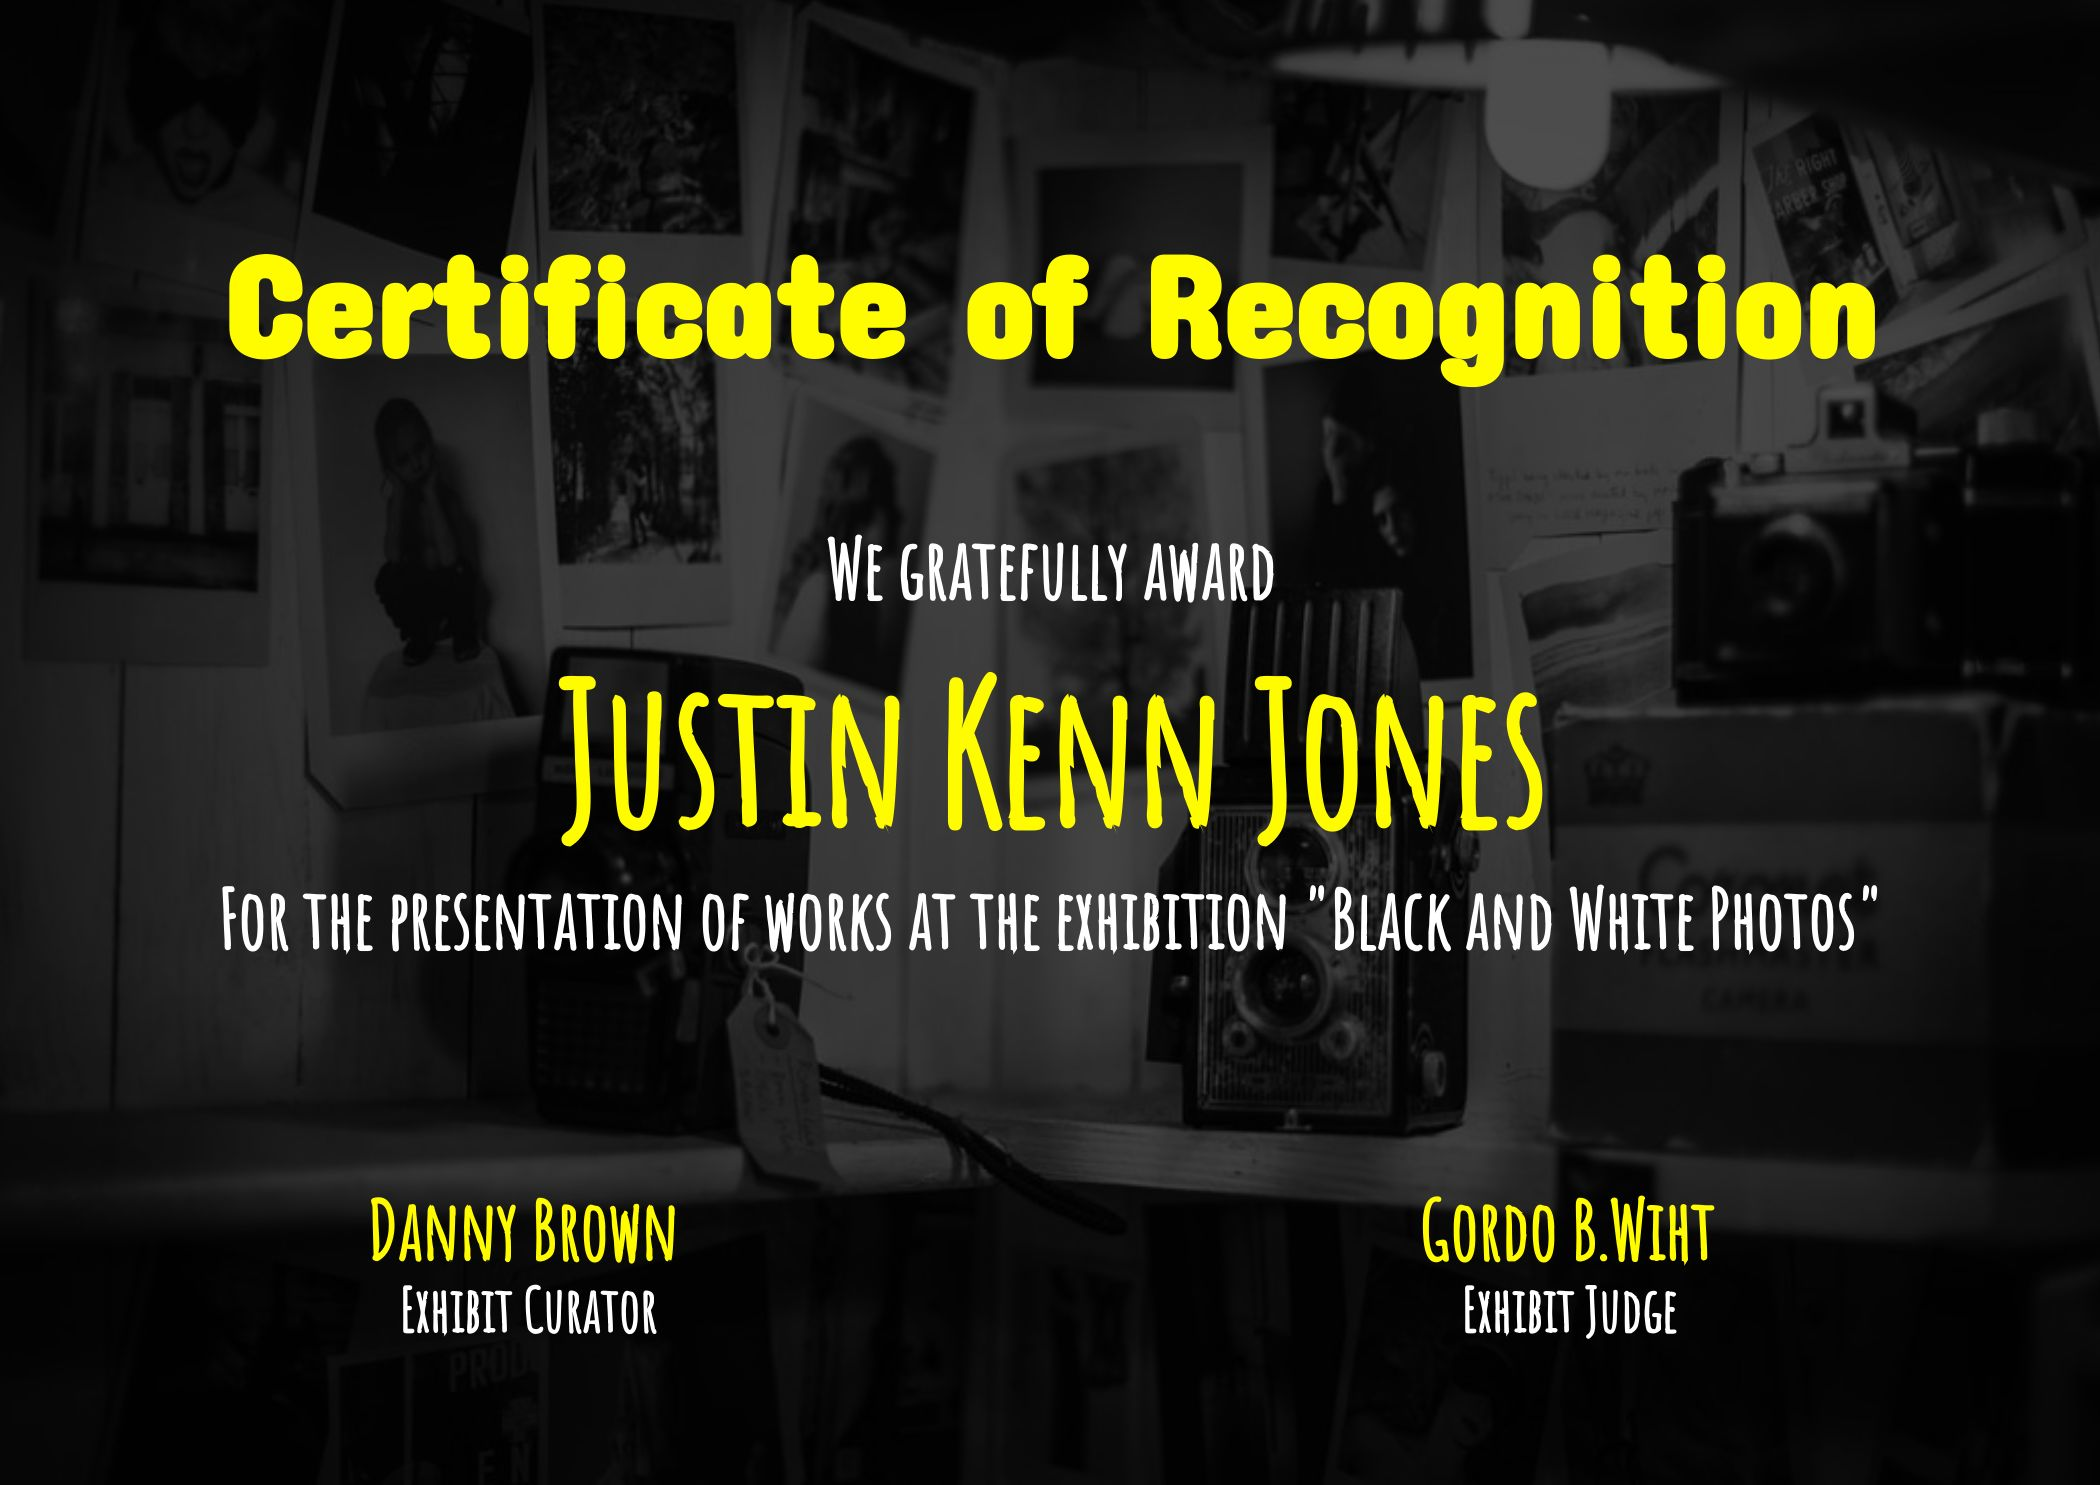 Certificate of Recognition Photo Exhibition